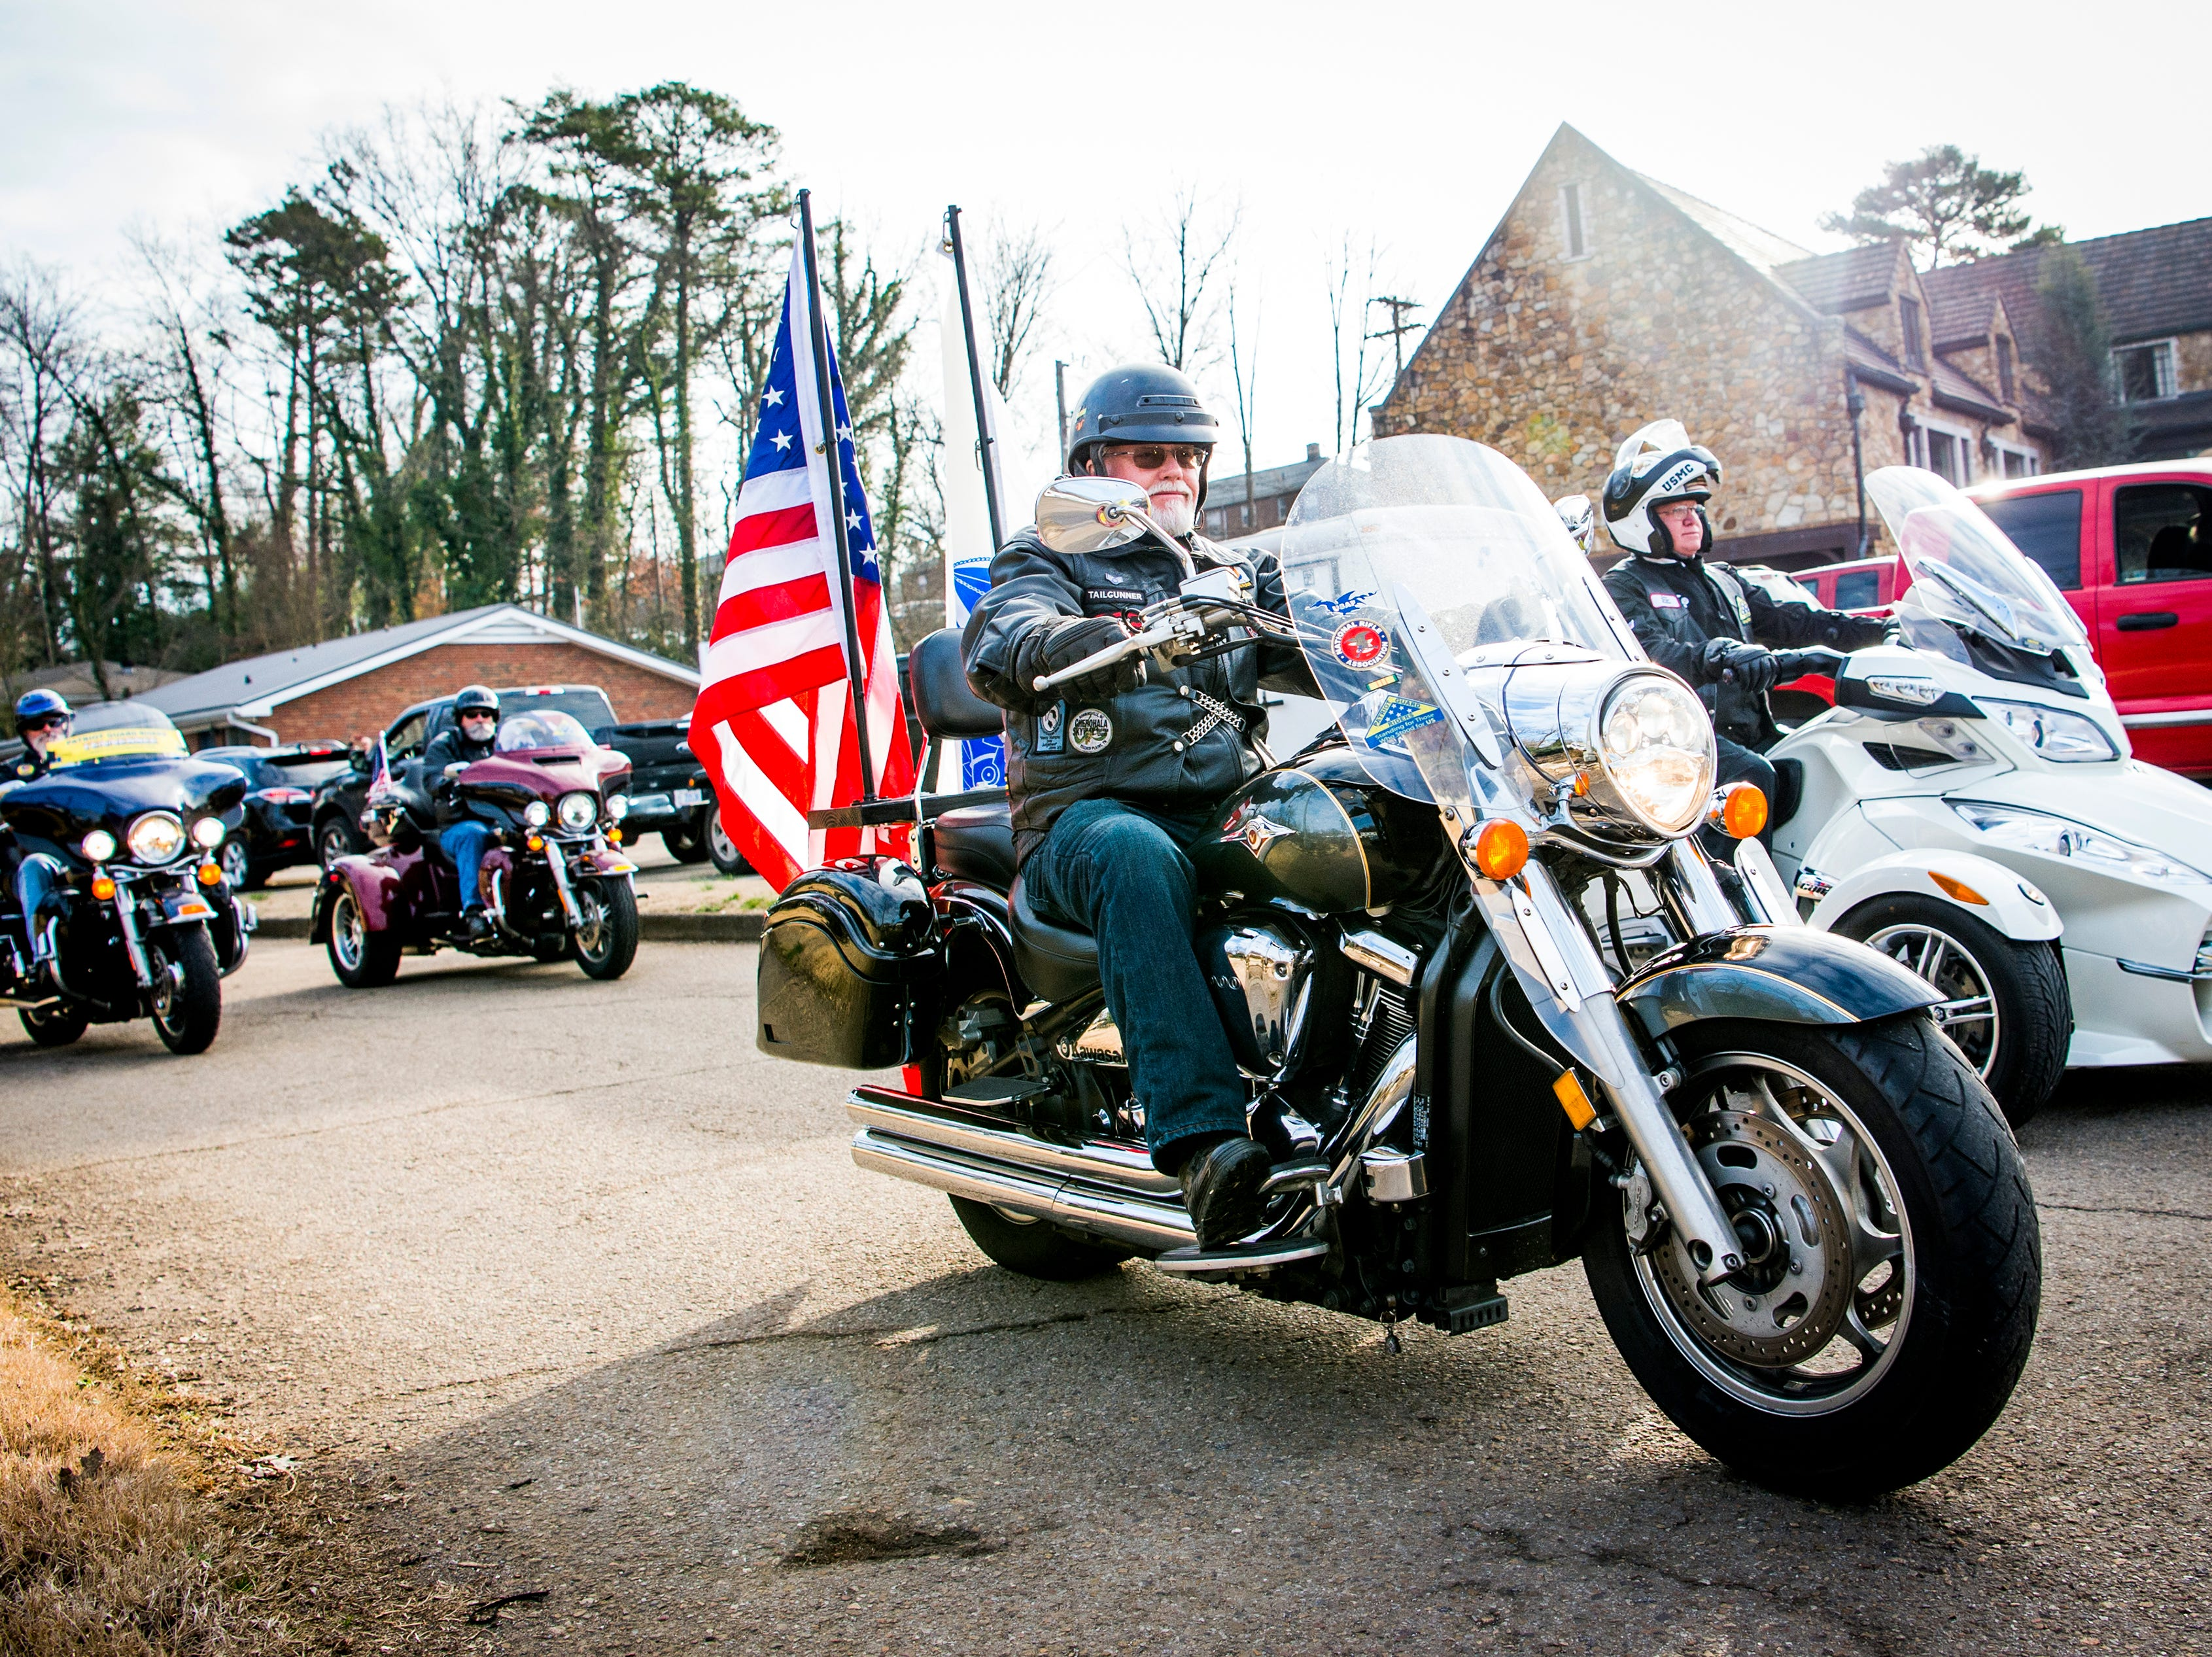 Local veteran motorcycle riders take part in a funeral procession to East Tennessee Veterans Cemetery on Gov. John Sevier Highway for seven East Tennessee veterans on Tuesday, February 5, 2019.